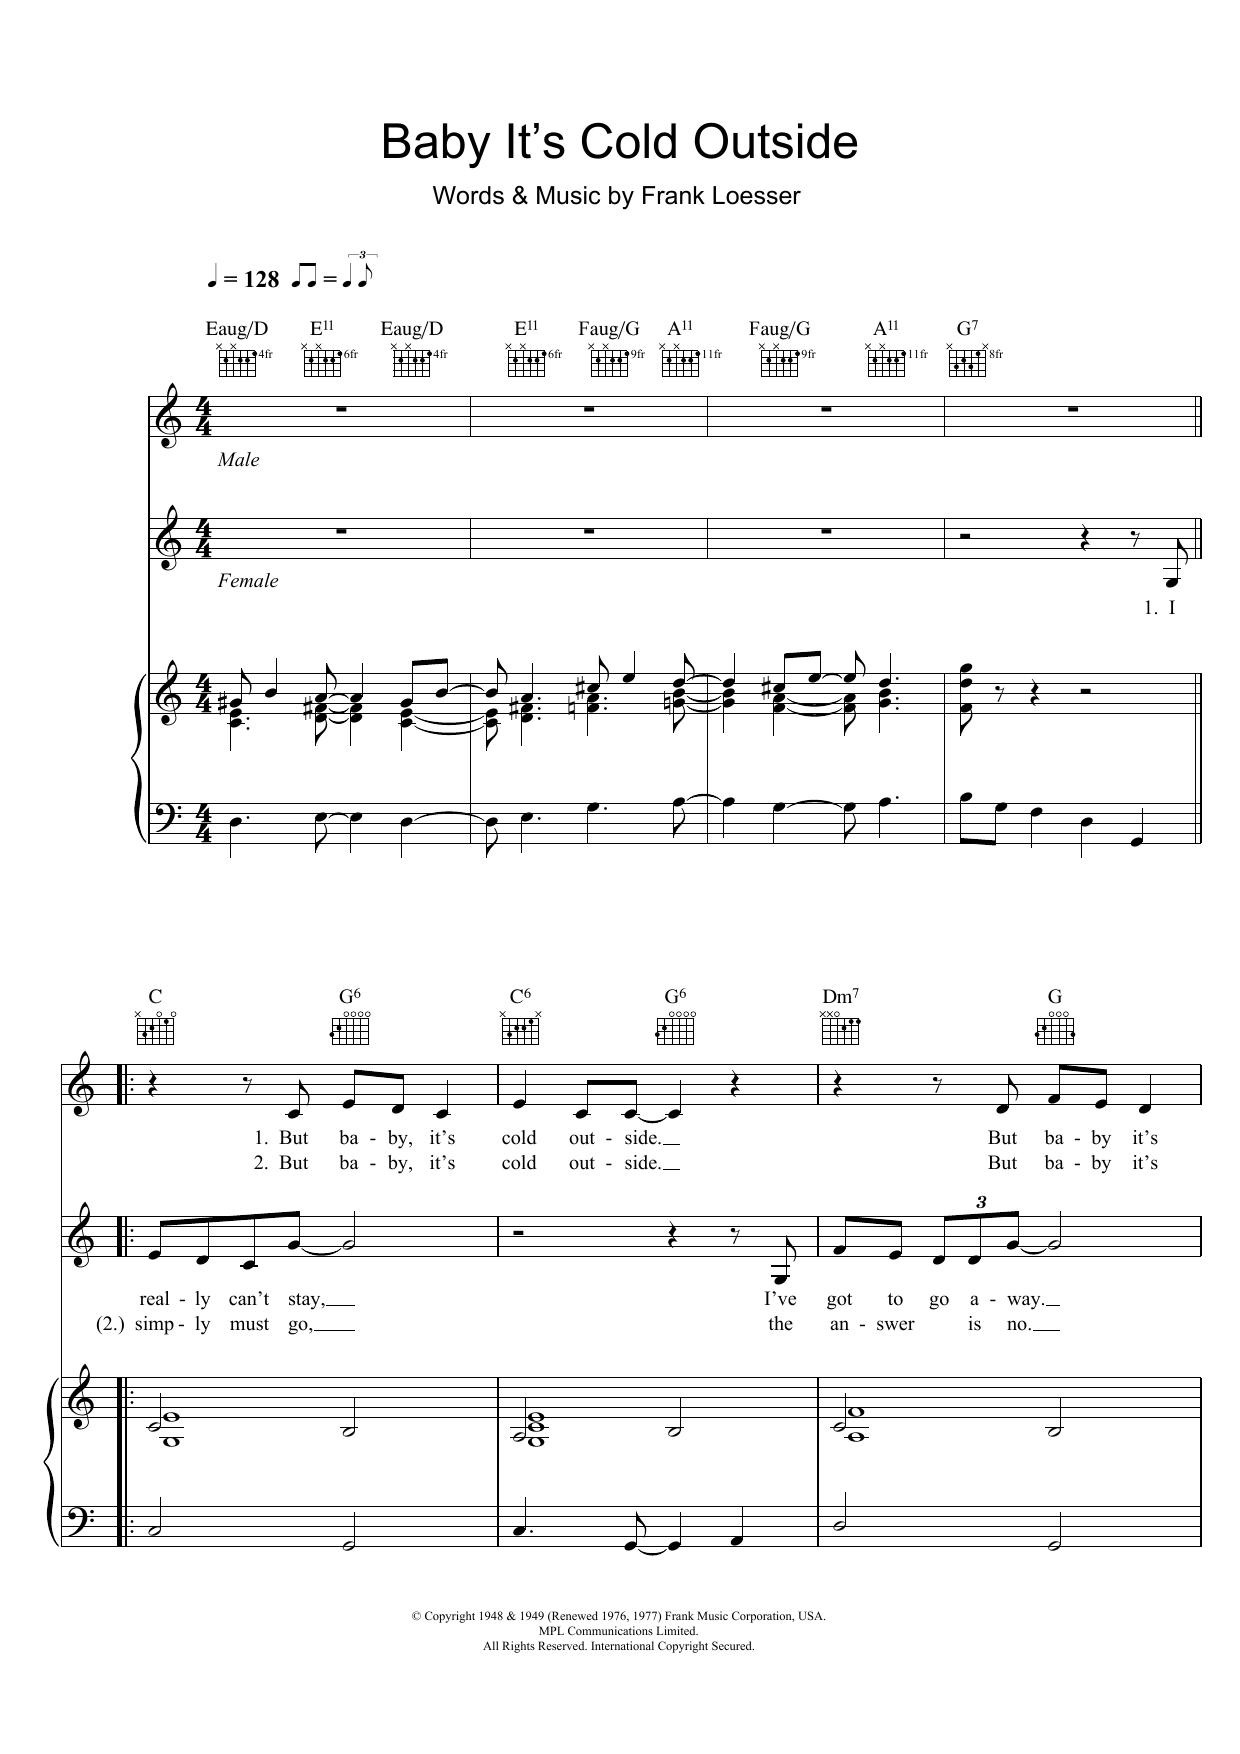 Baby, It's Cold Outside | Sheet Music Direct